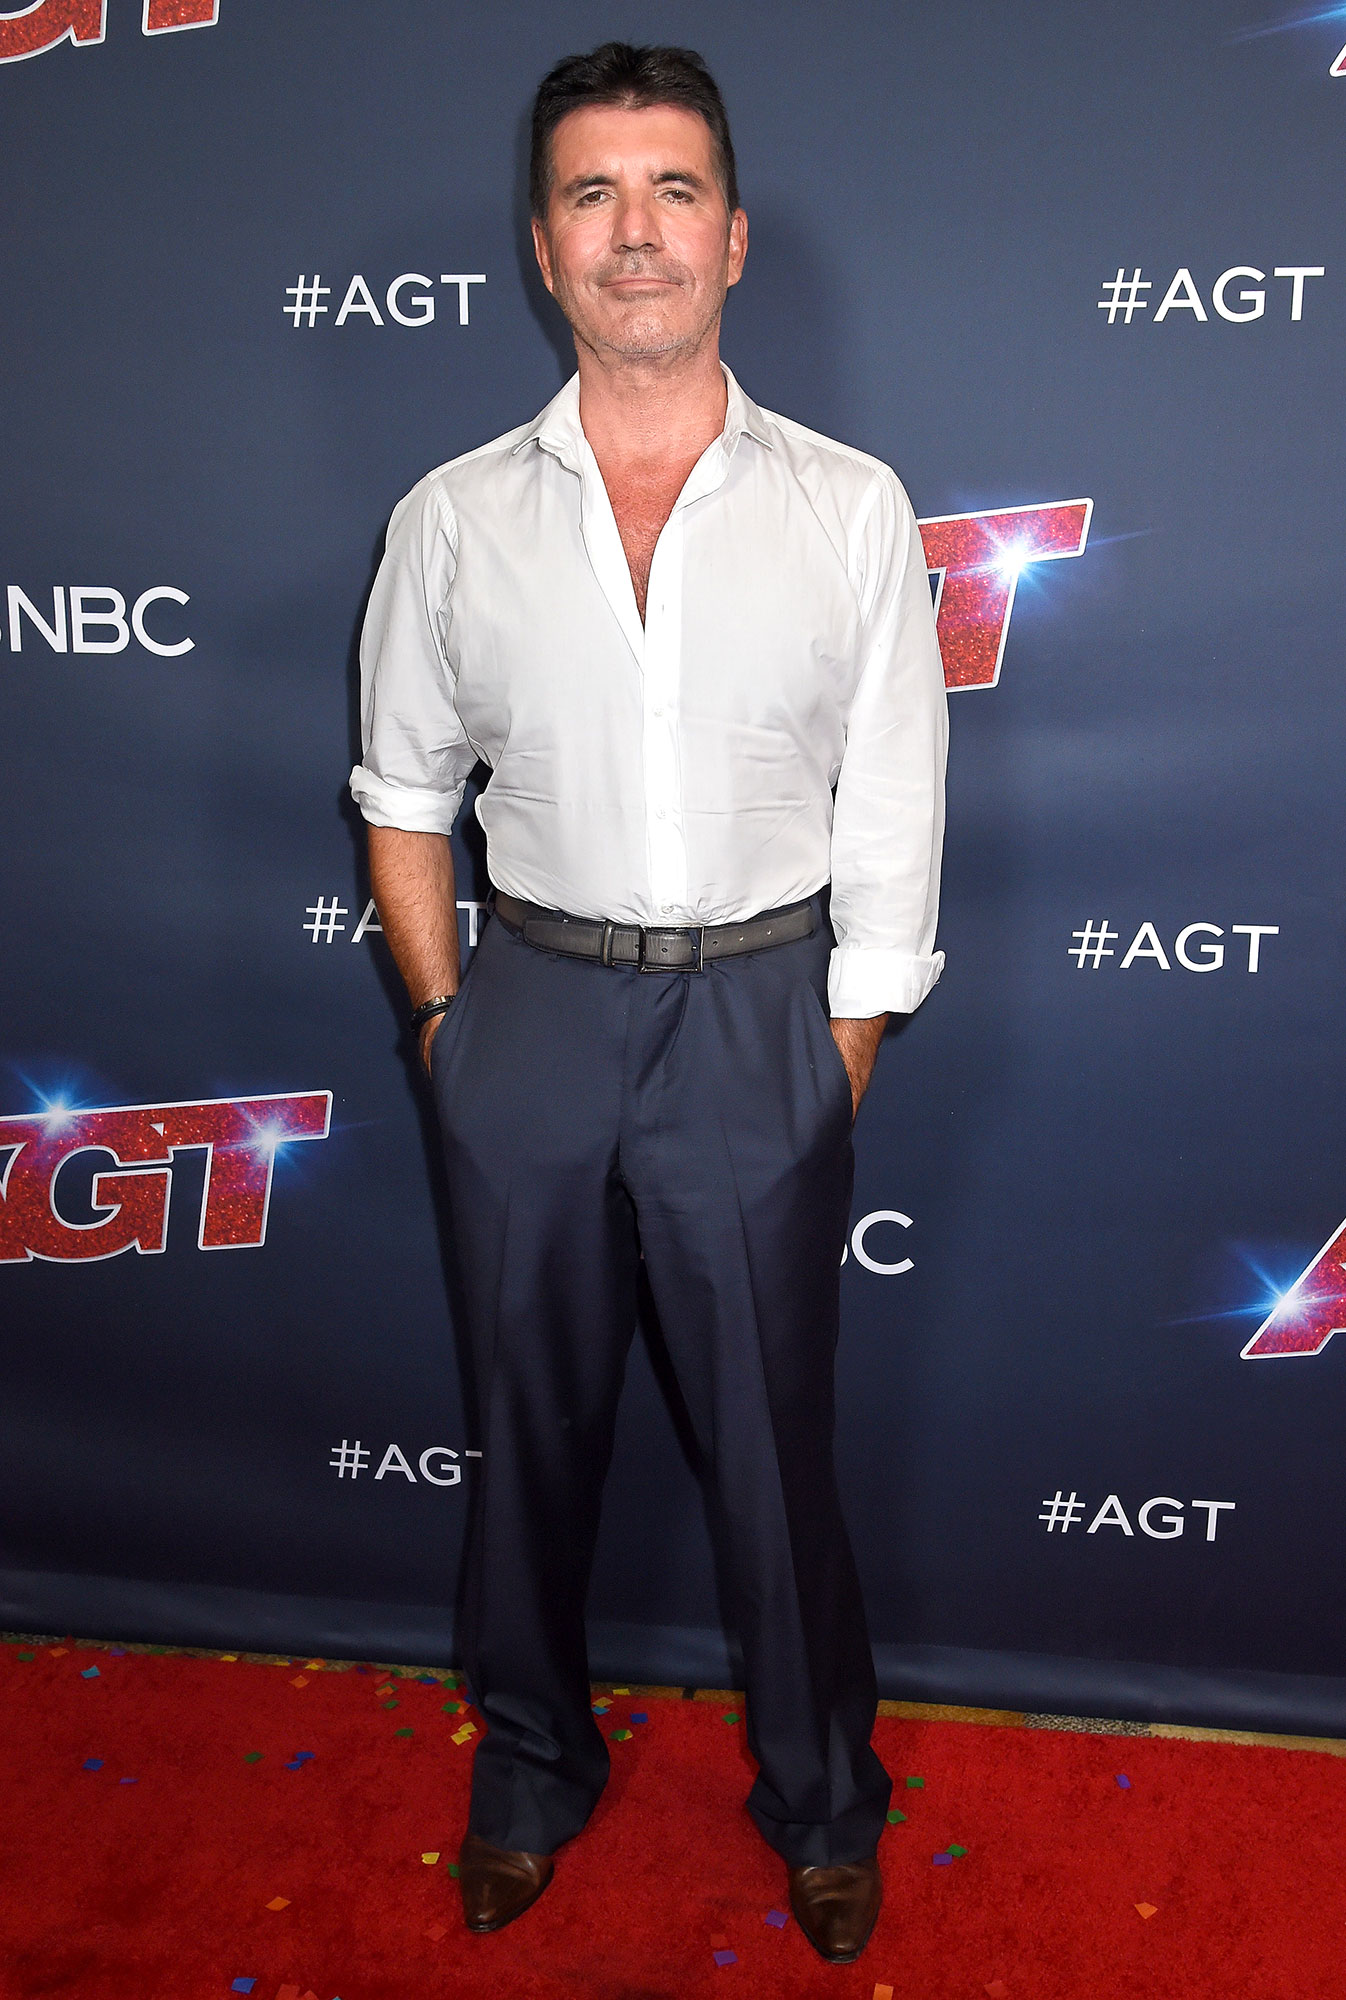 Simon Cowell Misses Pizza So Much After Diet Change